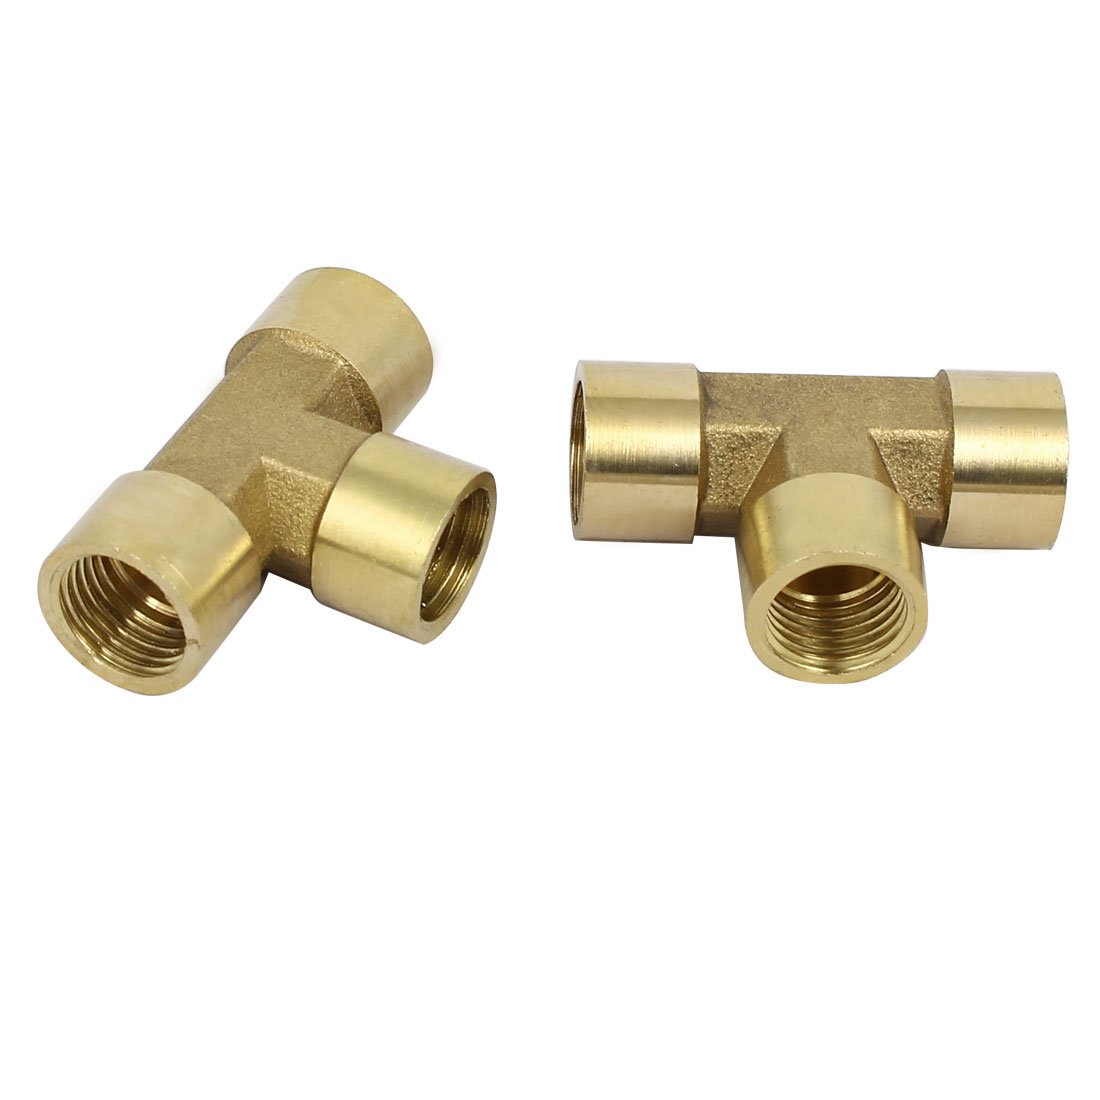 1/4BSP Female Thread Brass T Shape Tube Pipe Connecting Fittings Connectors 2pcs